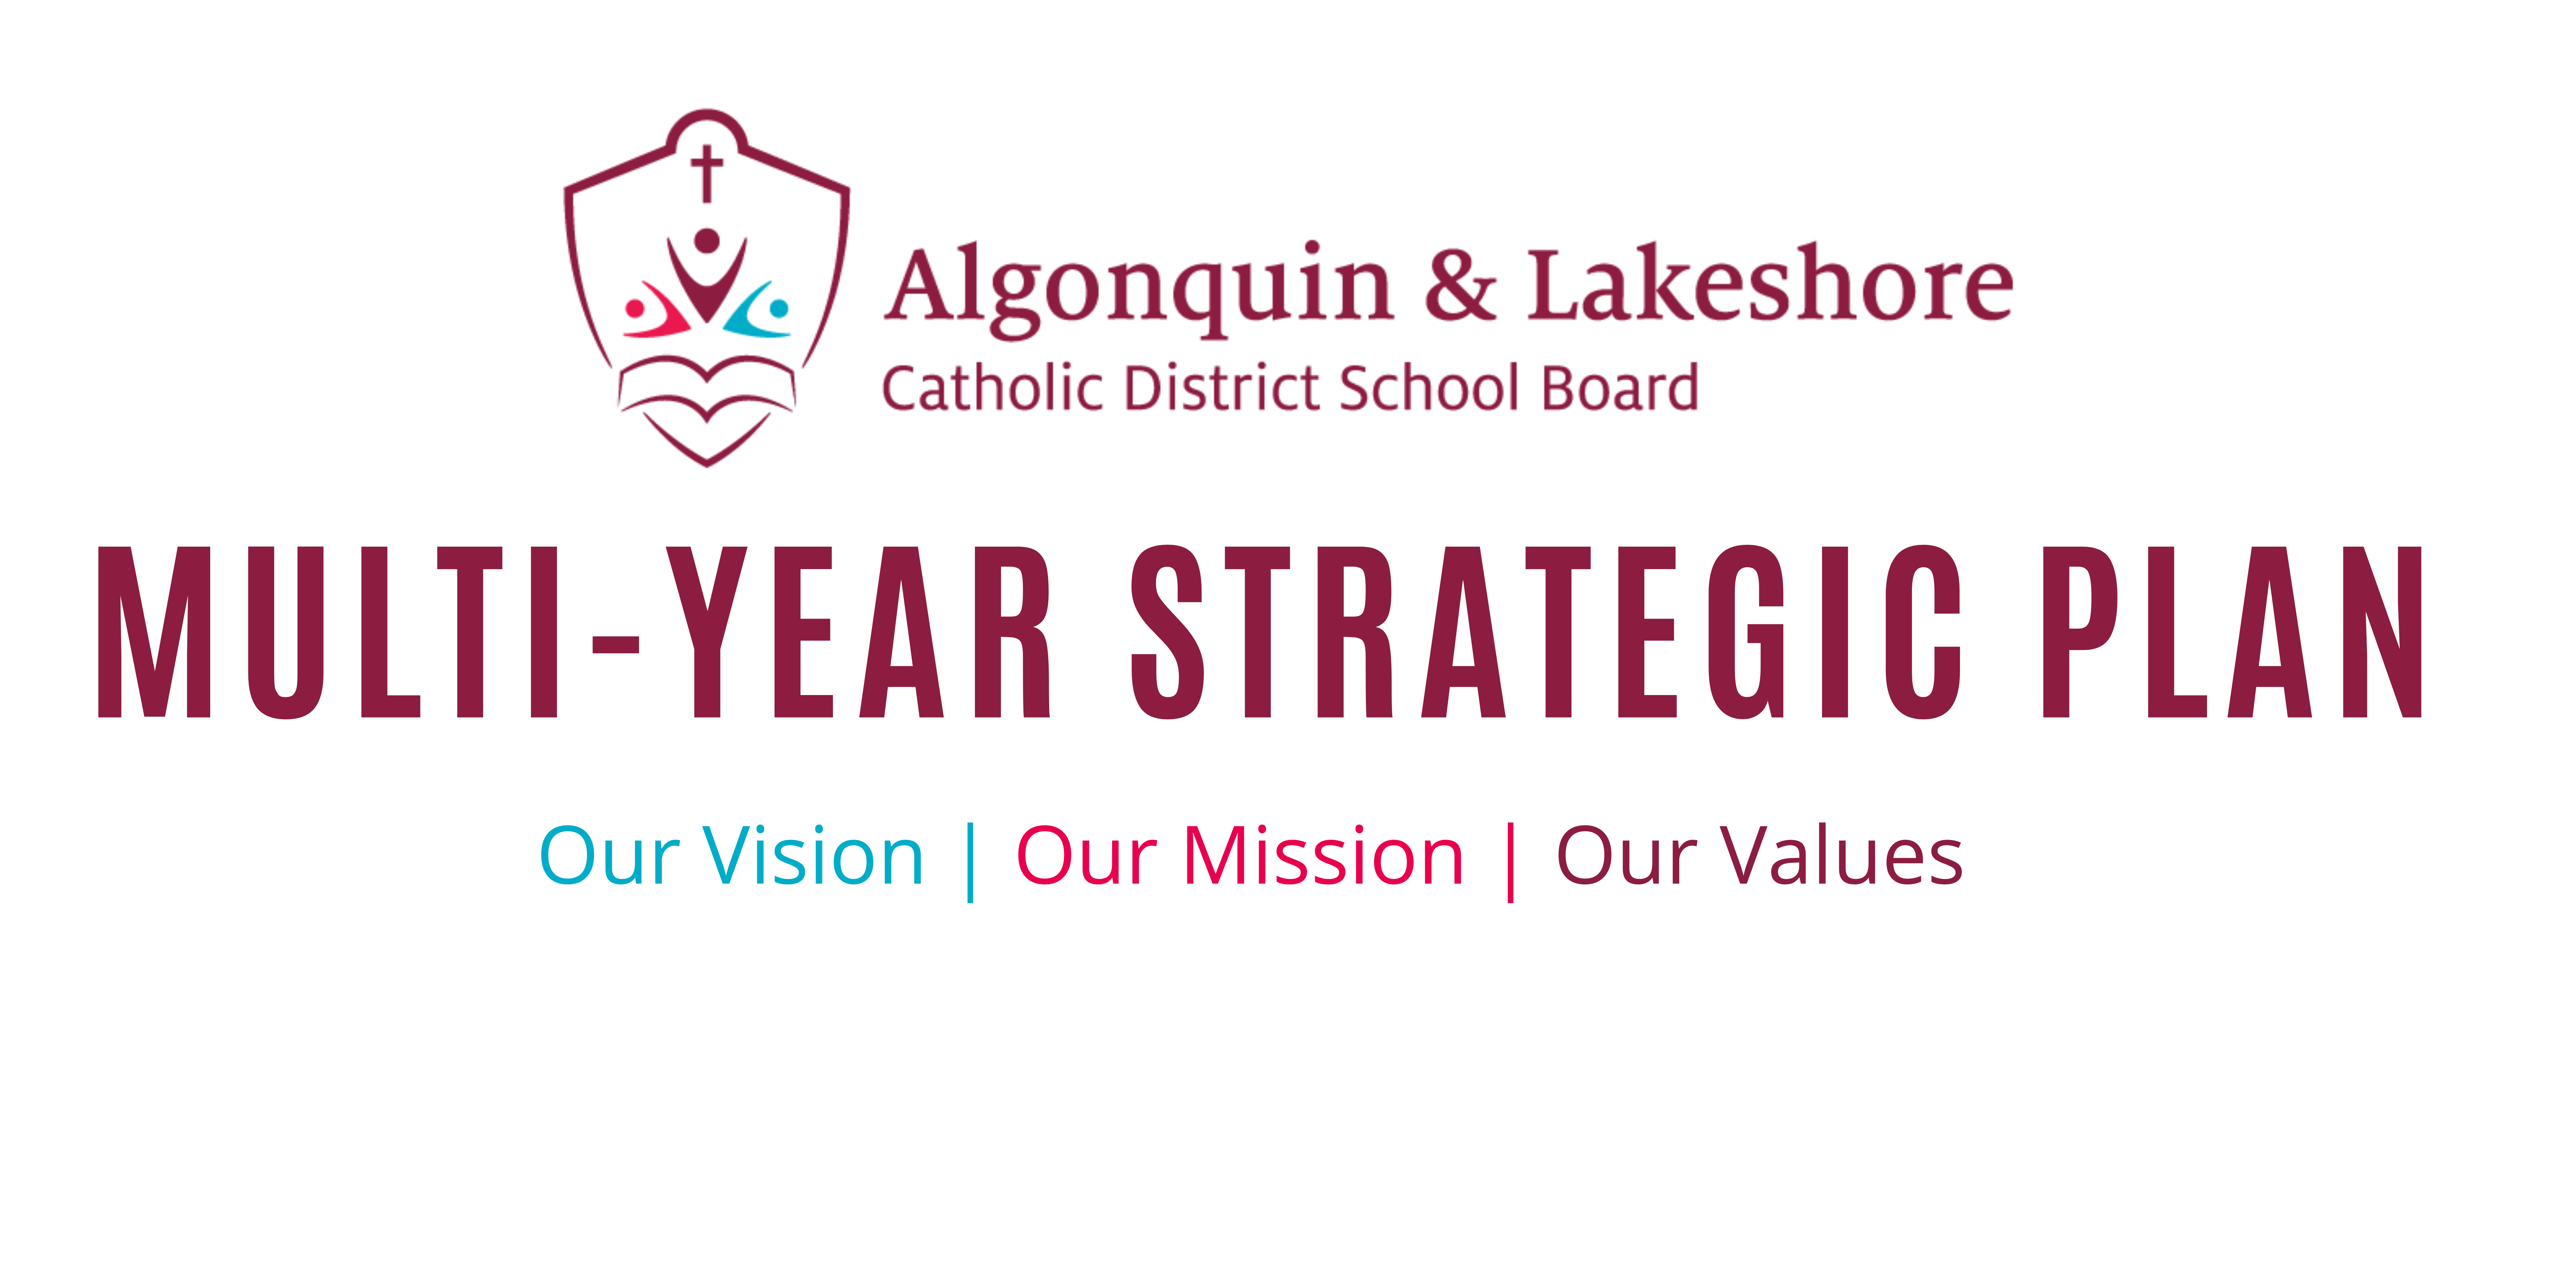 ALCDSB Launches New Five Year Plan